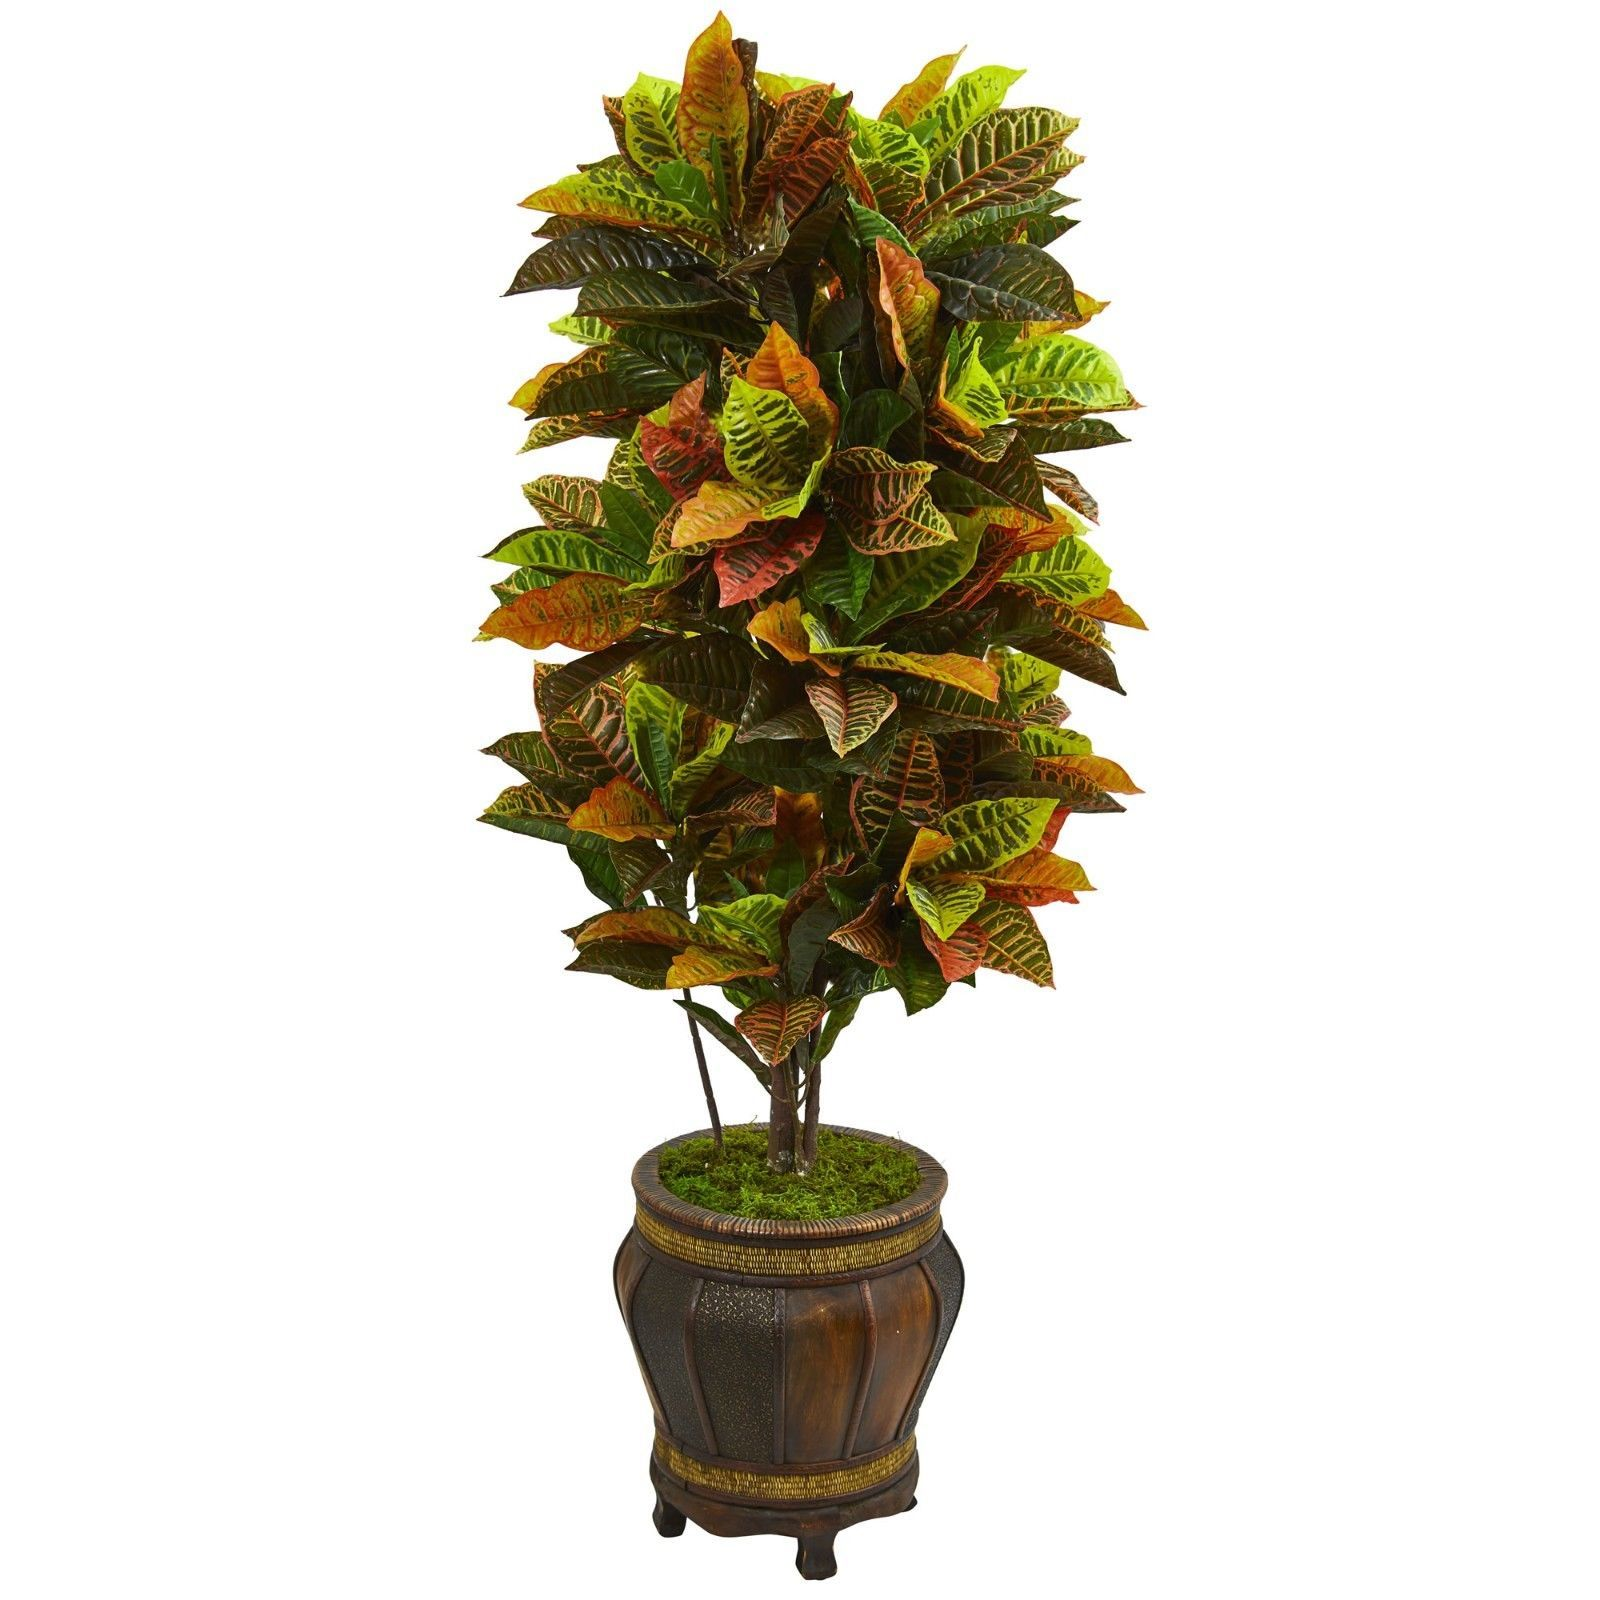 5.5' Artificial Croton Plant In Decorative Planter (Real Touch)